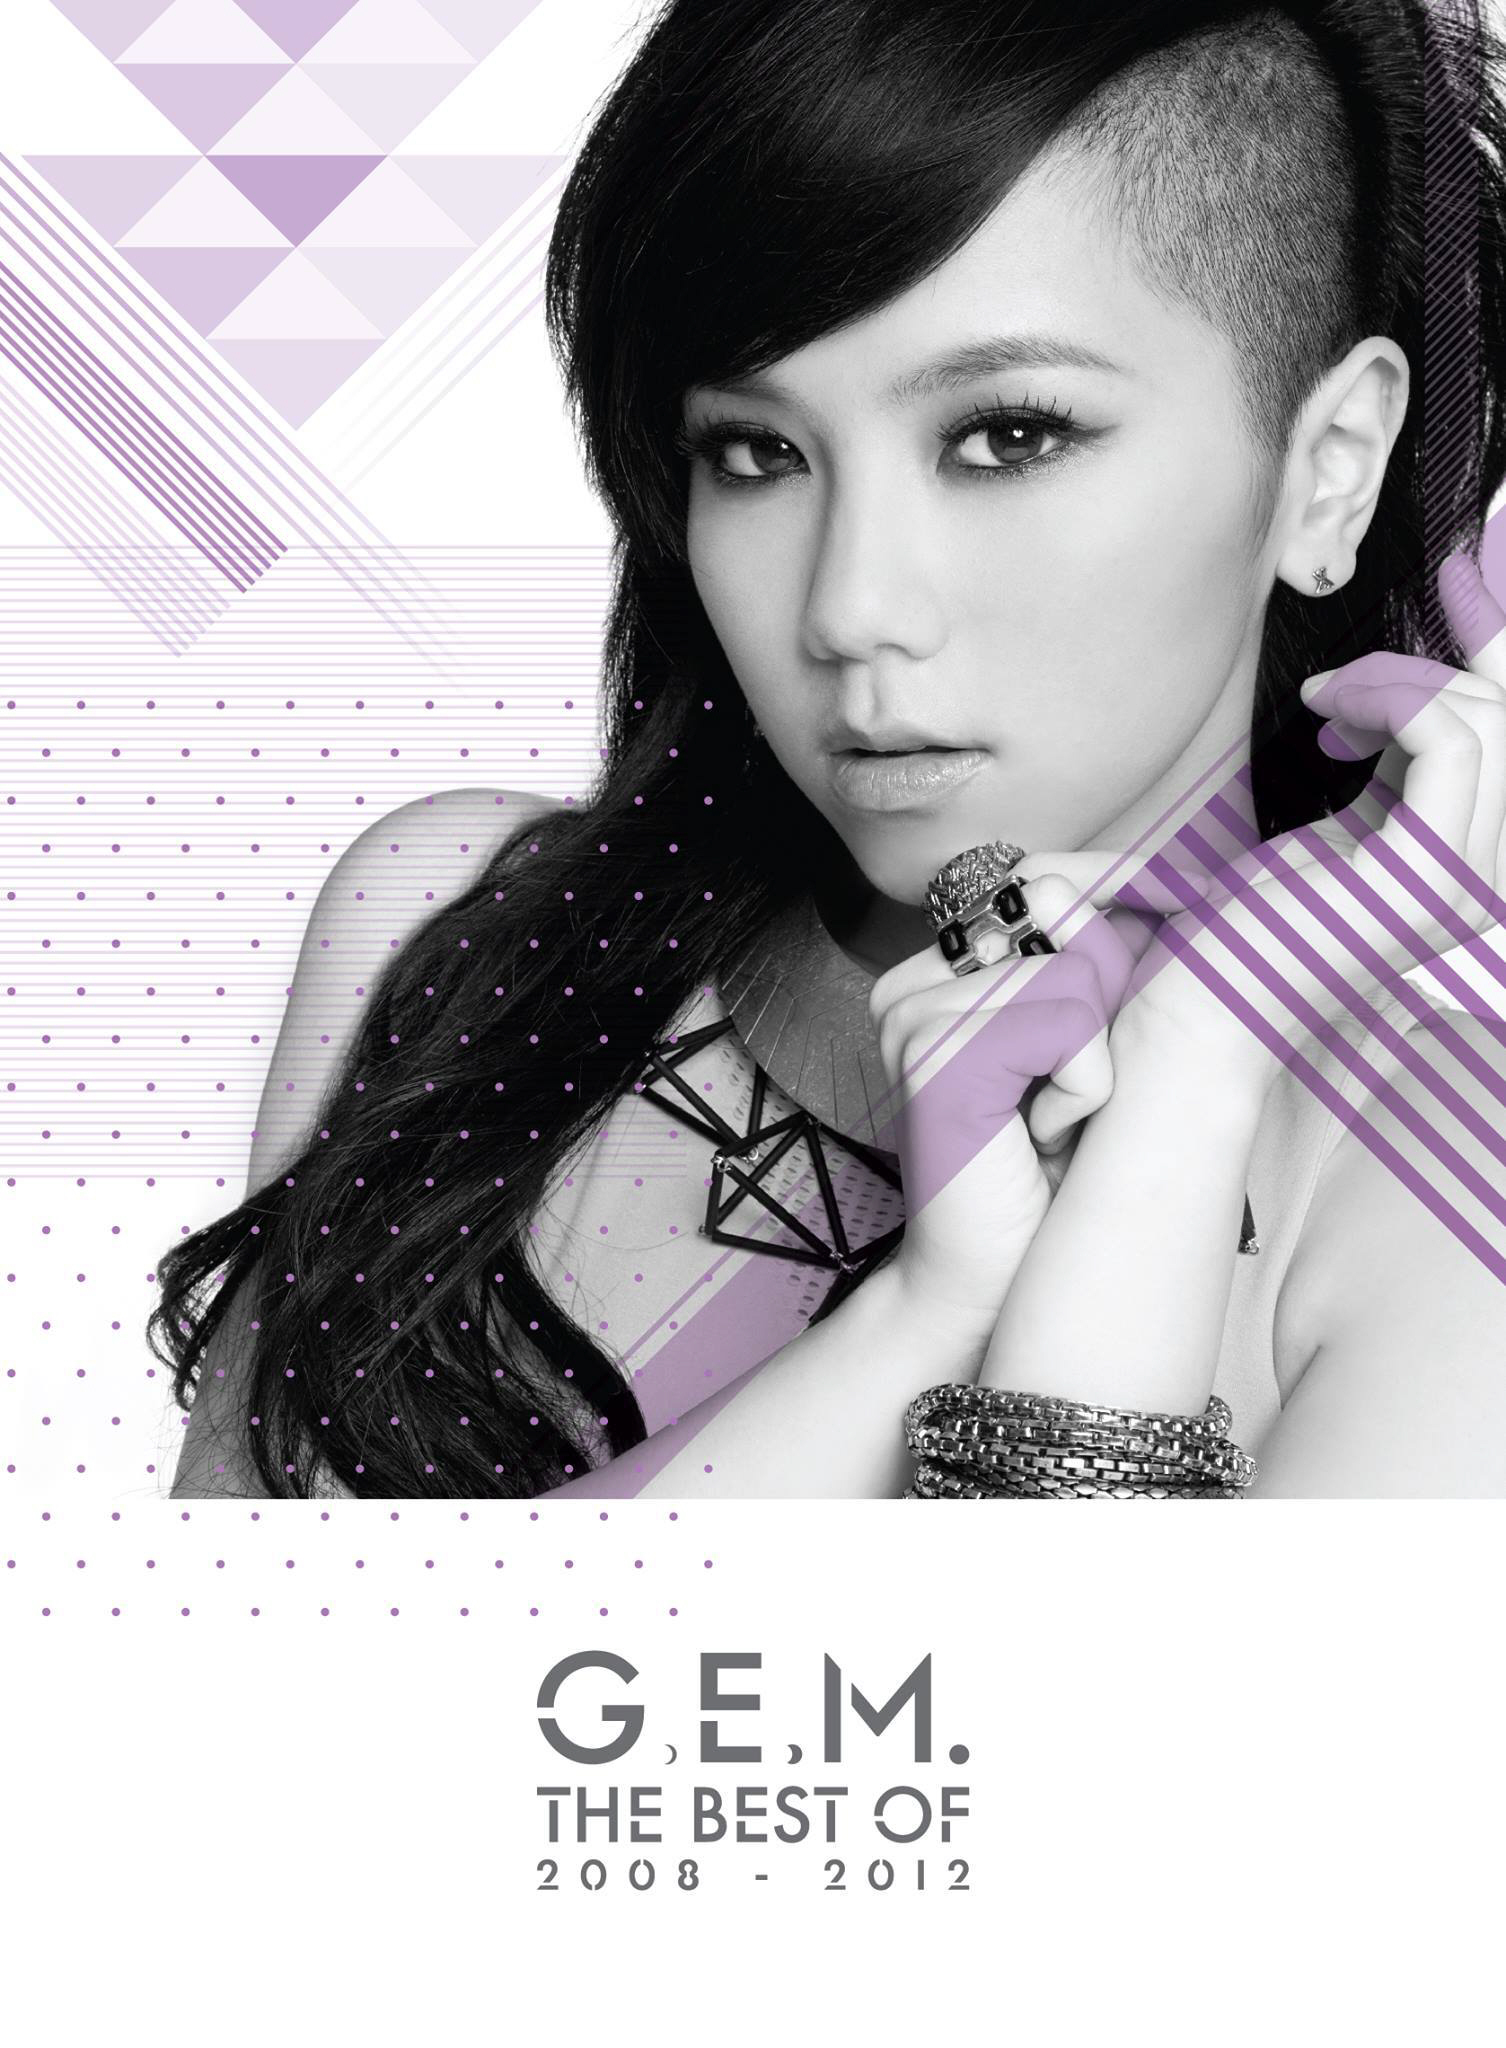 邓紫棋 GEM The Best Of G.E.M. 2008-2012